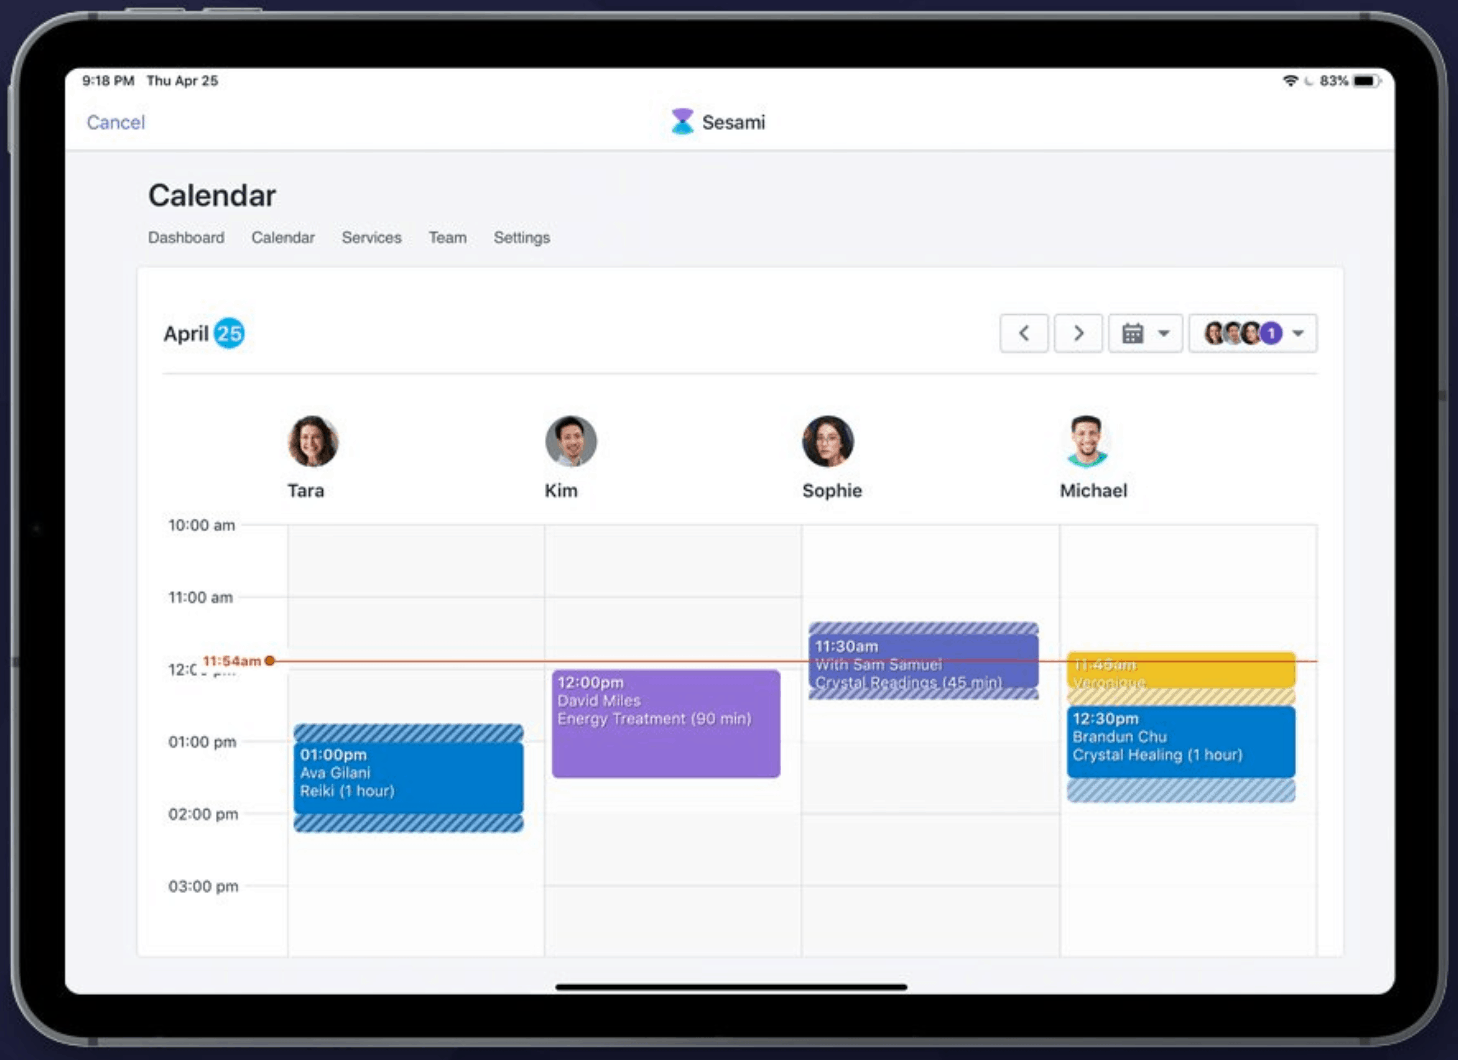 Shopify with Sesami integration screenshot on iPad showing calendar scheduling